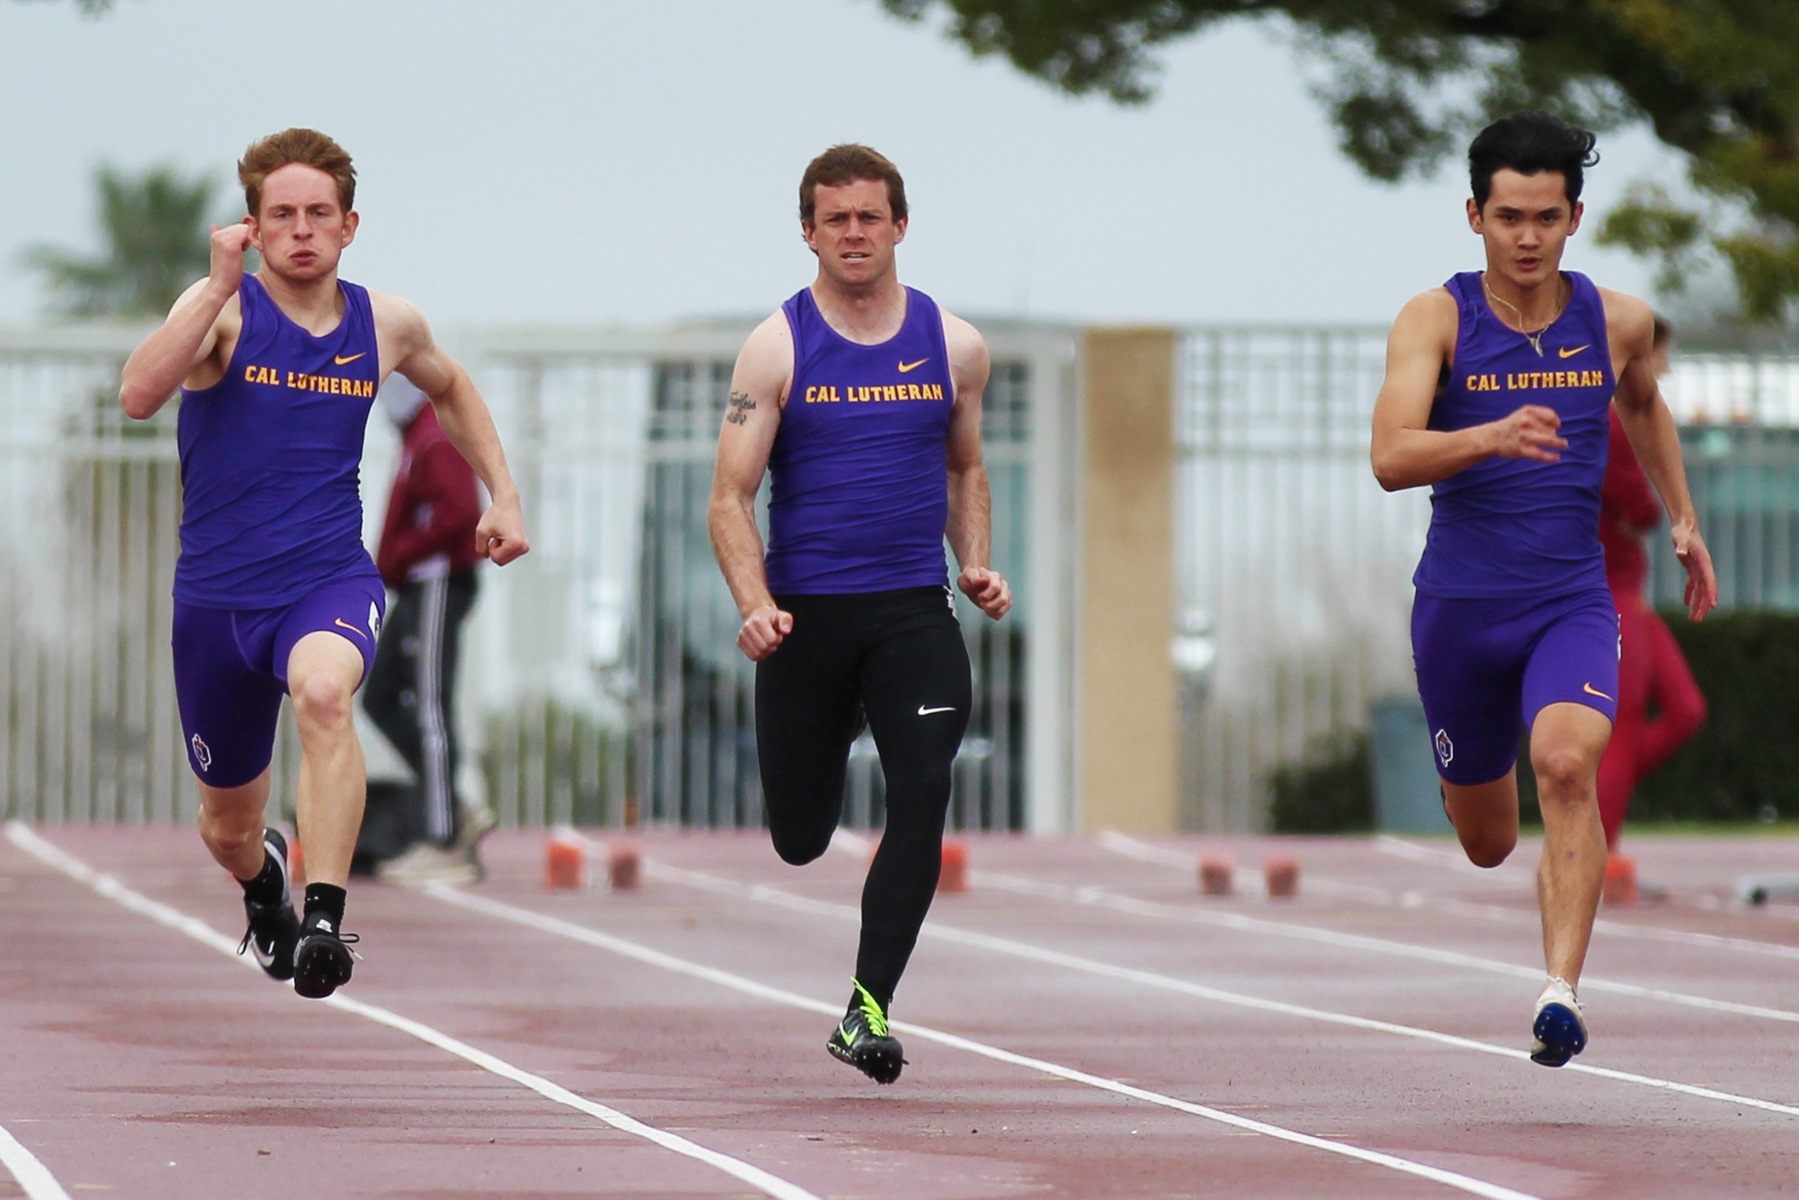 Cal Lutheran Trio Wraps Up Weekend at Jim Klein Combined Events